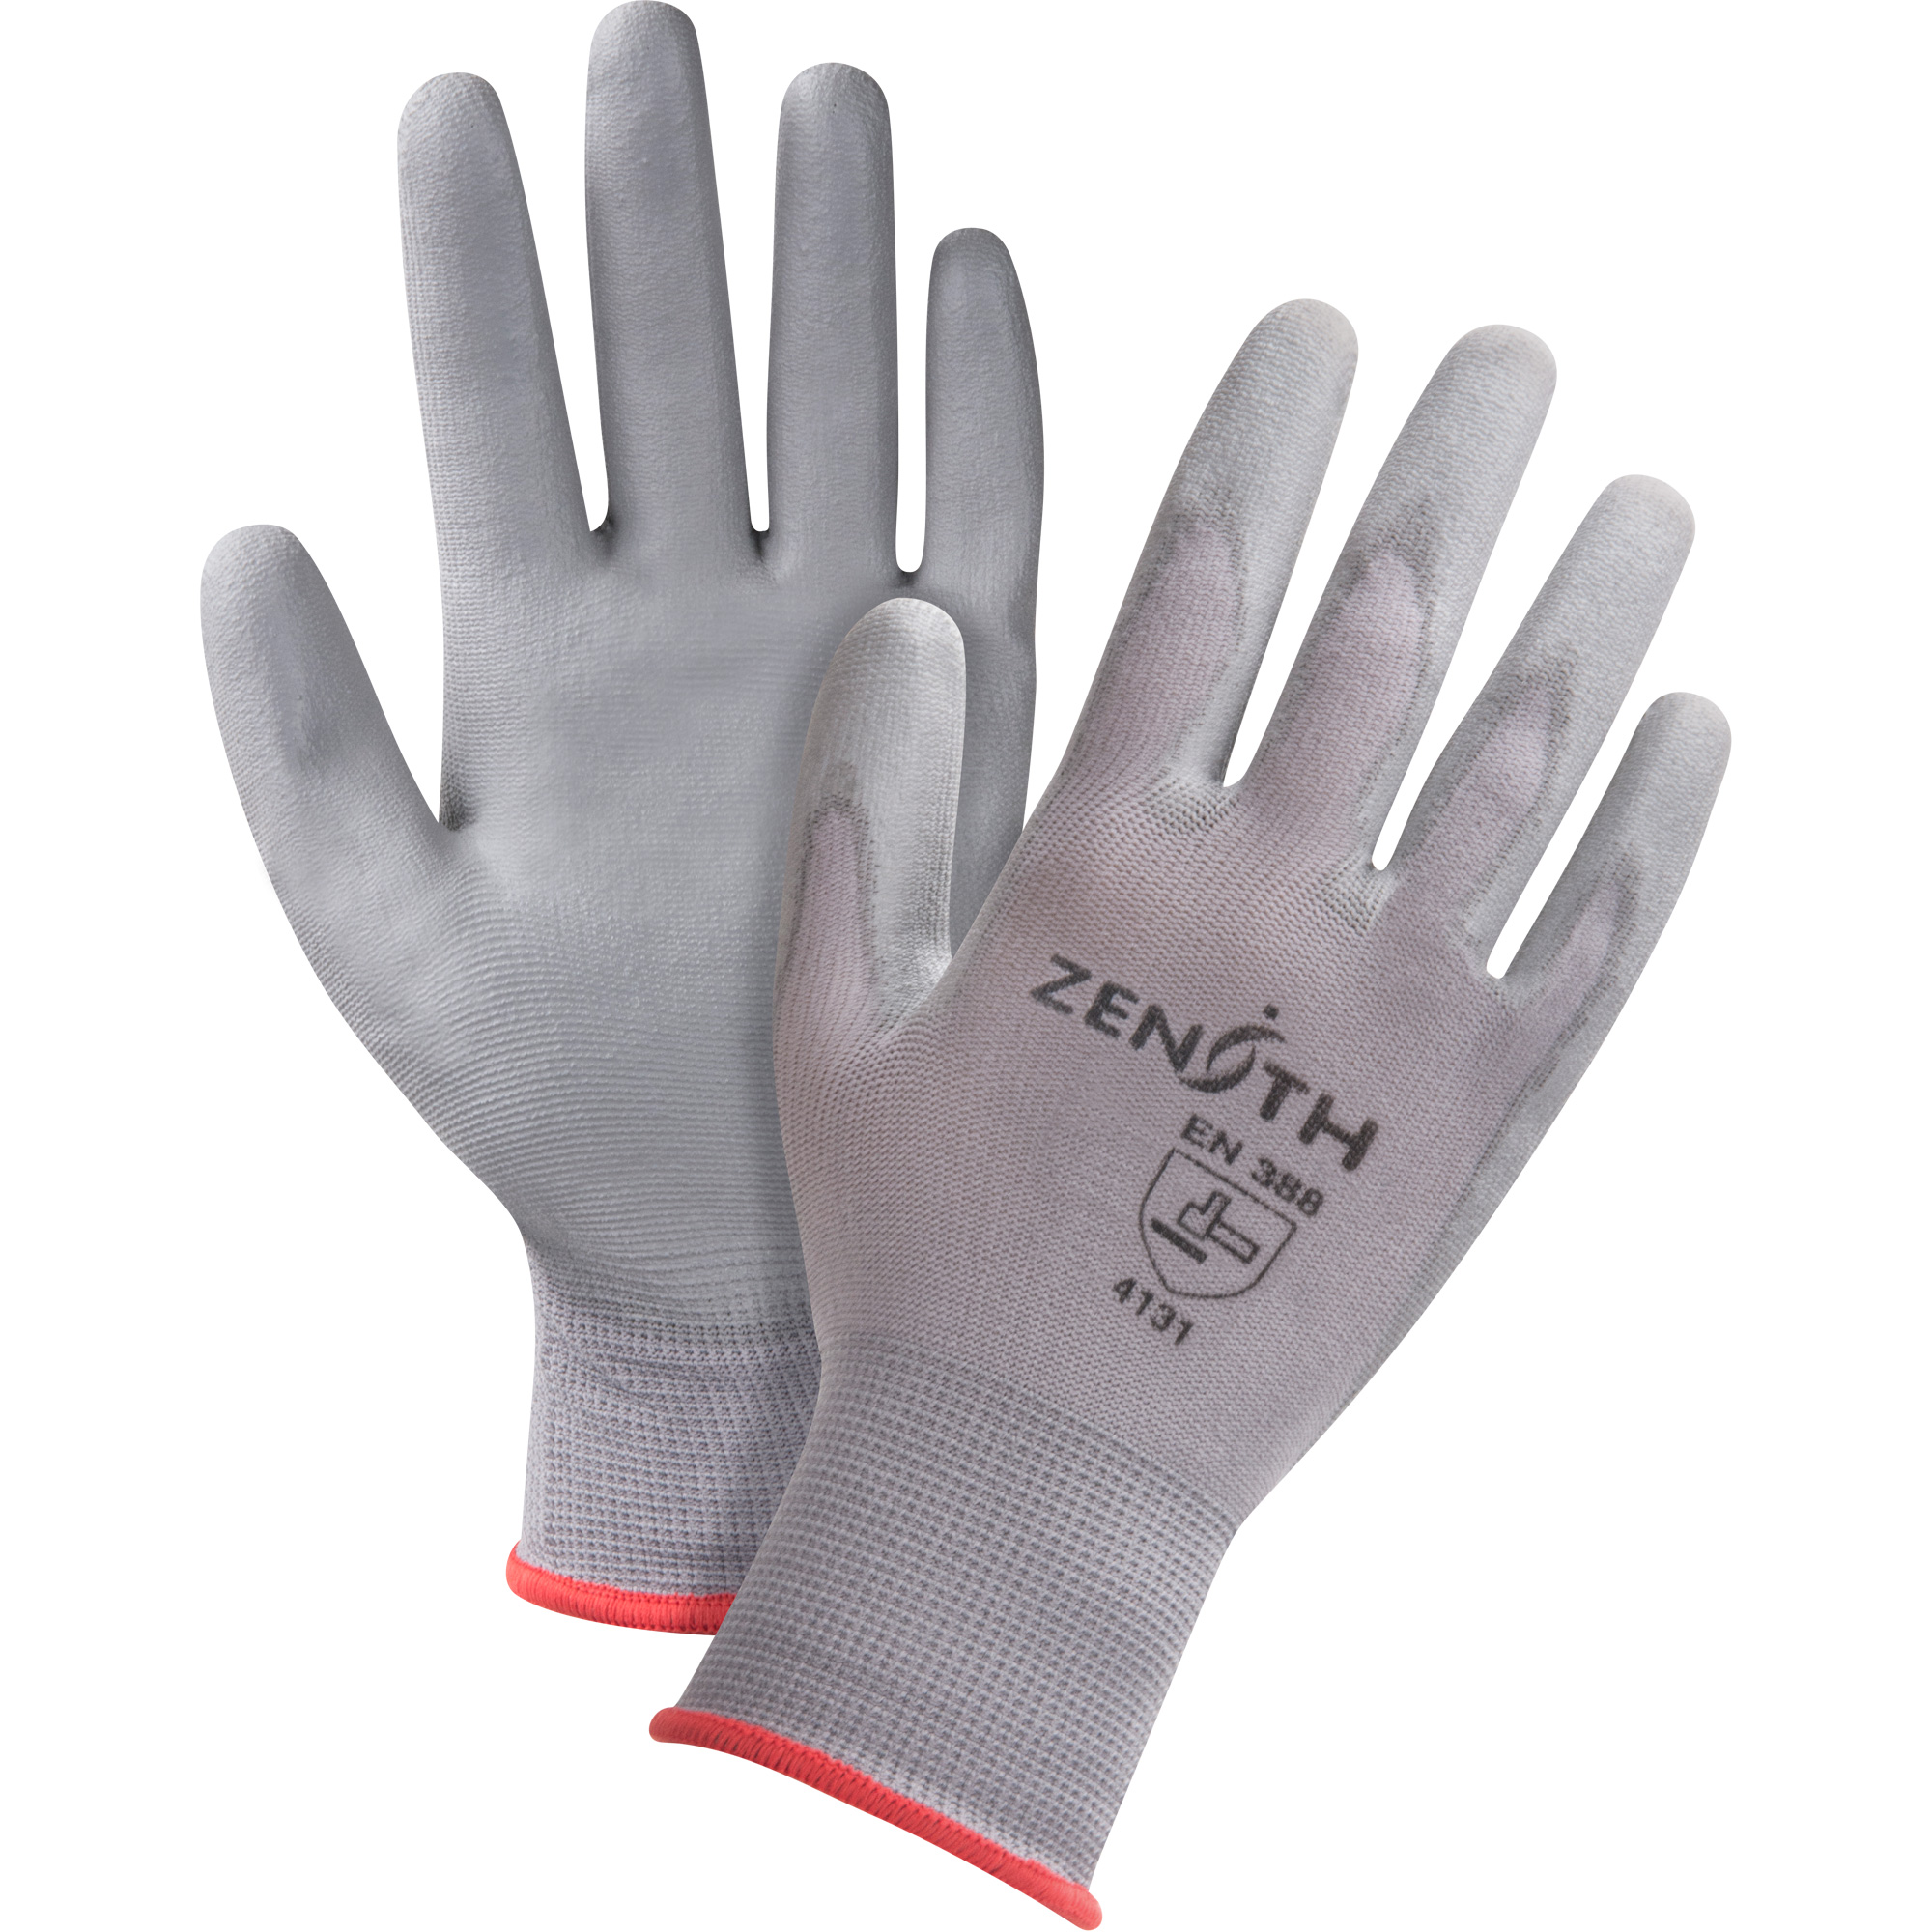 0e5c479cc3 ZENITH SAFETY PRODUCTS Polyurethane-Coated Nylon Gloves ...